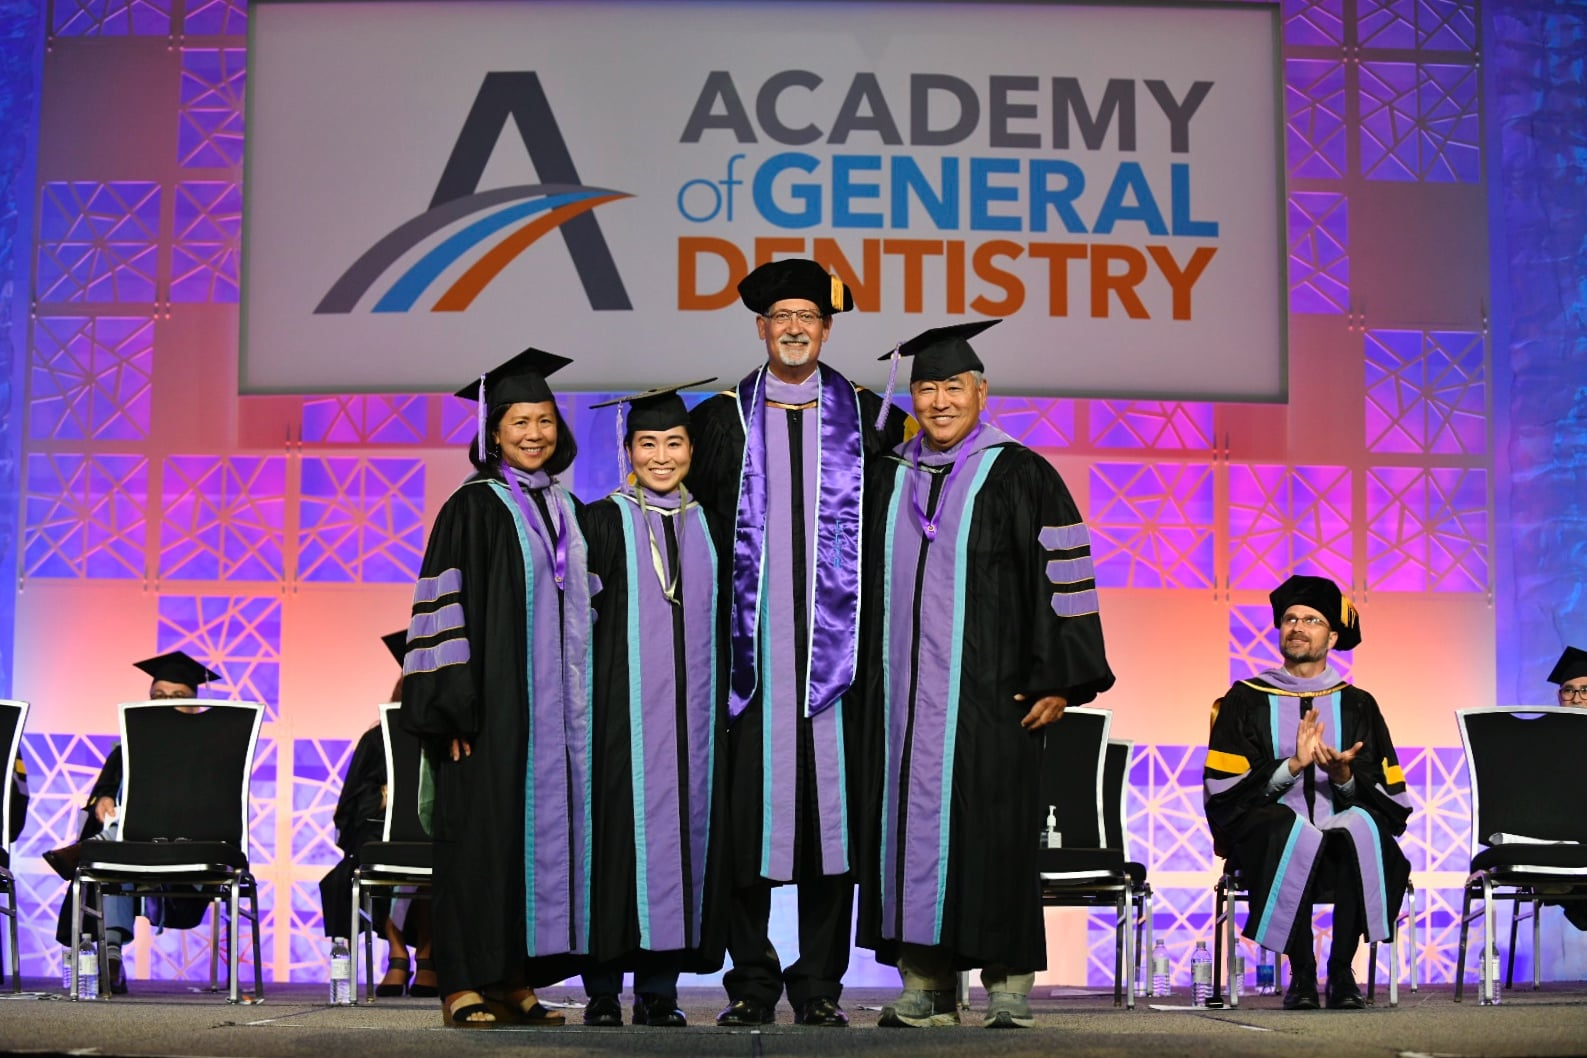 It's a family affair with Dr.'s Tanaka and Dr. Leong receiving their Academy of General Dentistry Mastership and Fellowship in 2021